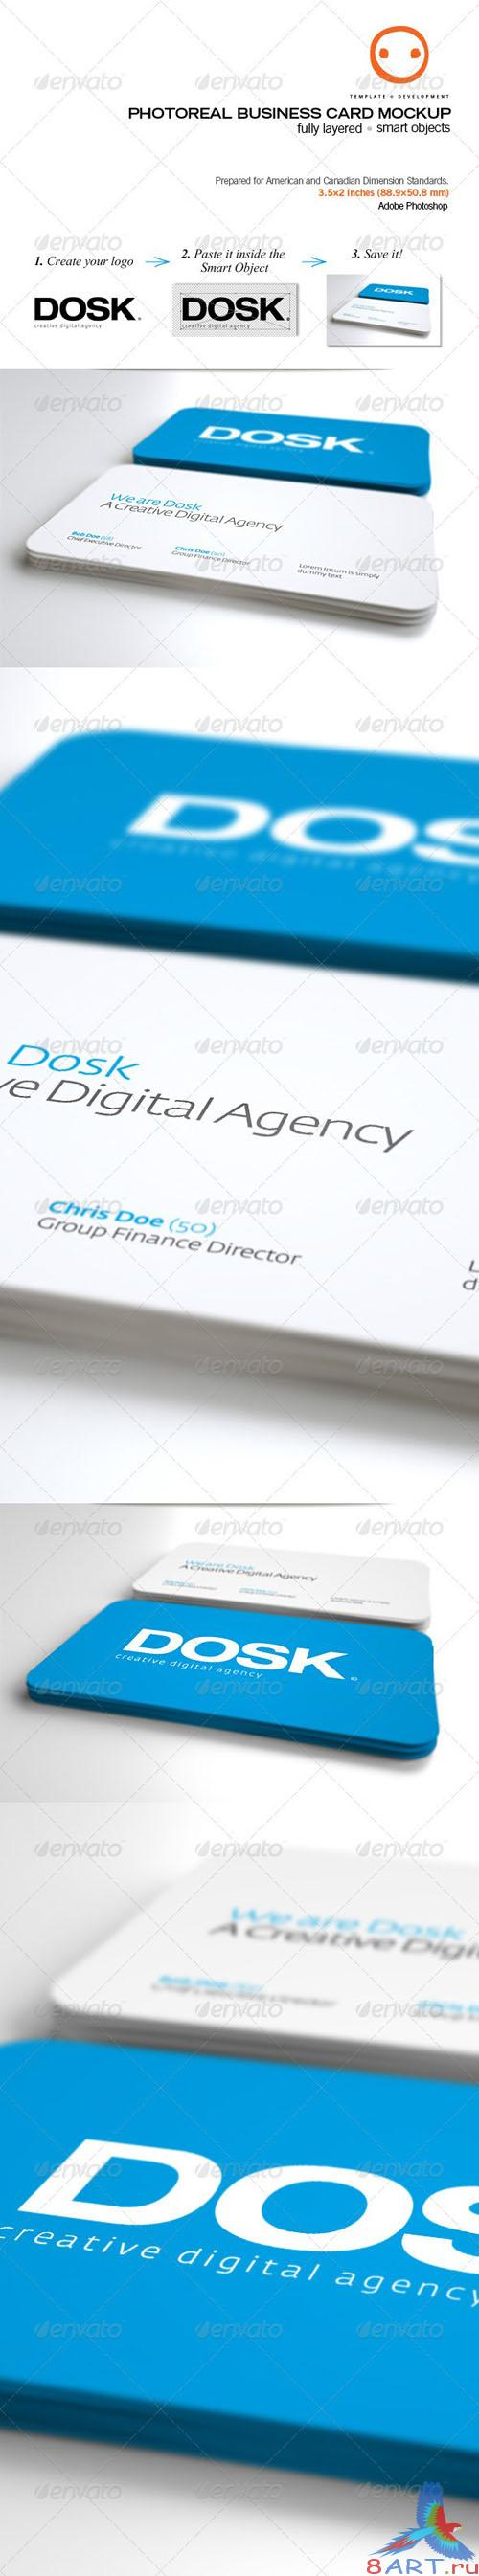 GraphicRiver - Photoreal Business Card Mockup 759489